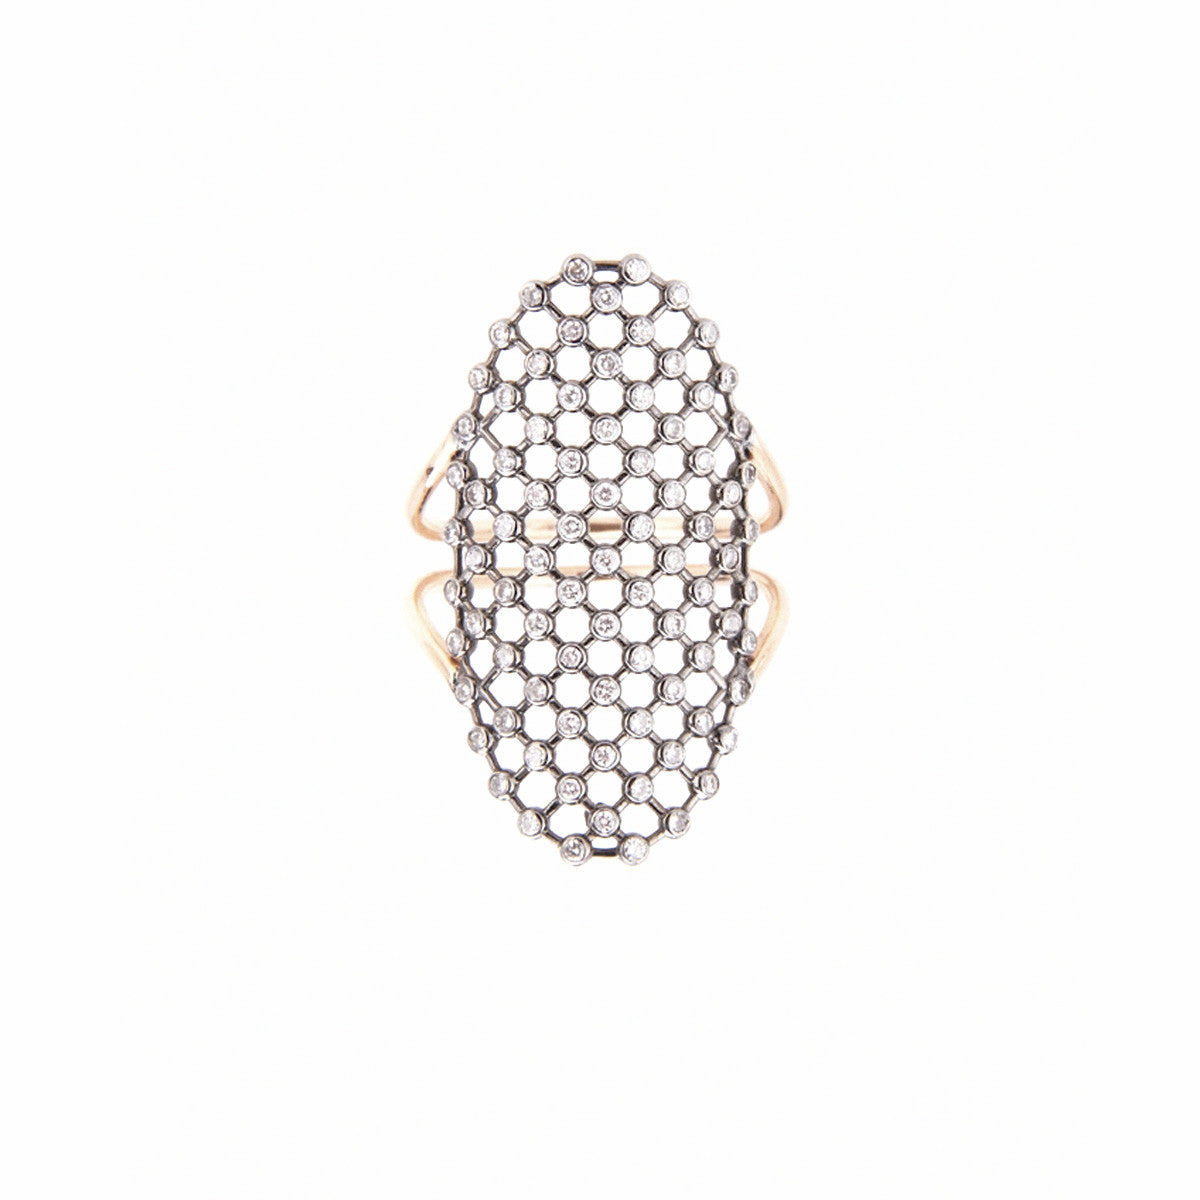 Diane Kordas Jewellery Oval Mesh Ring 18kt gold